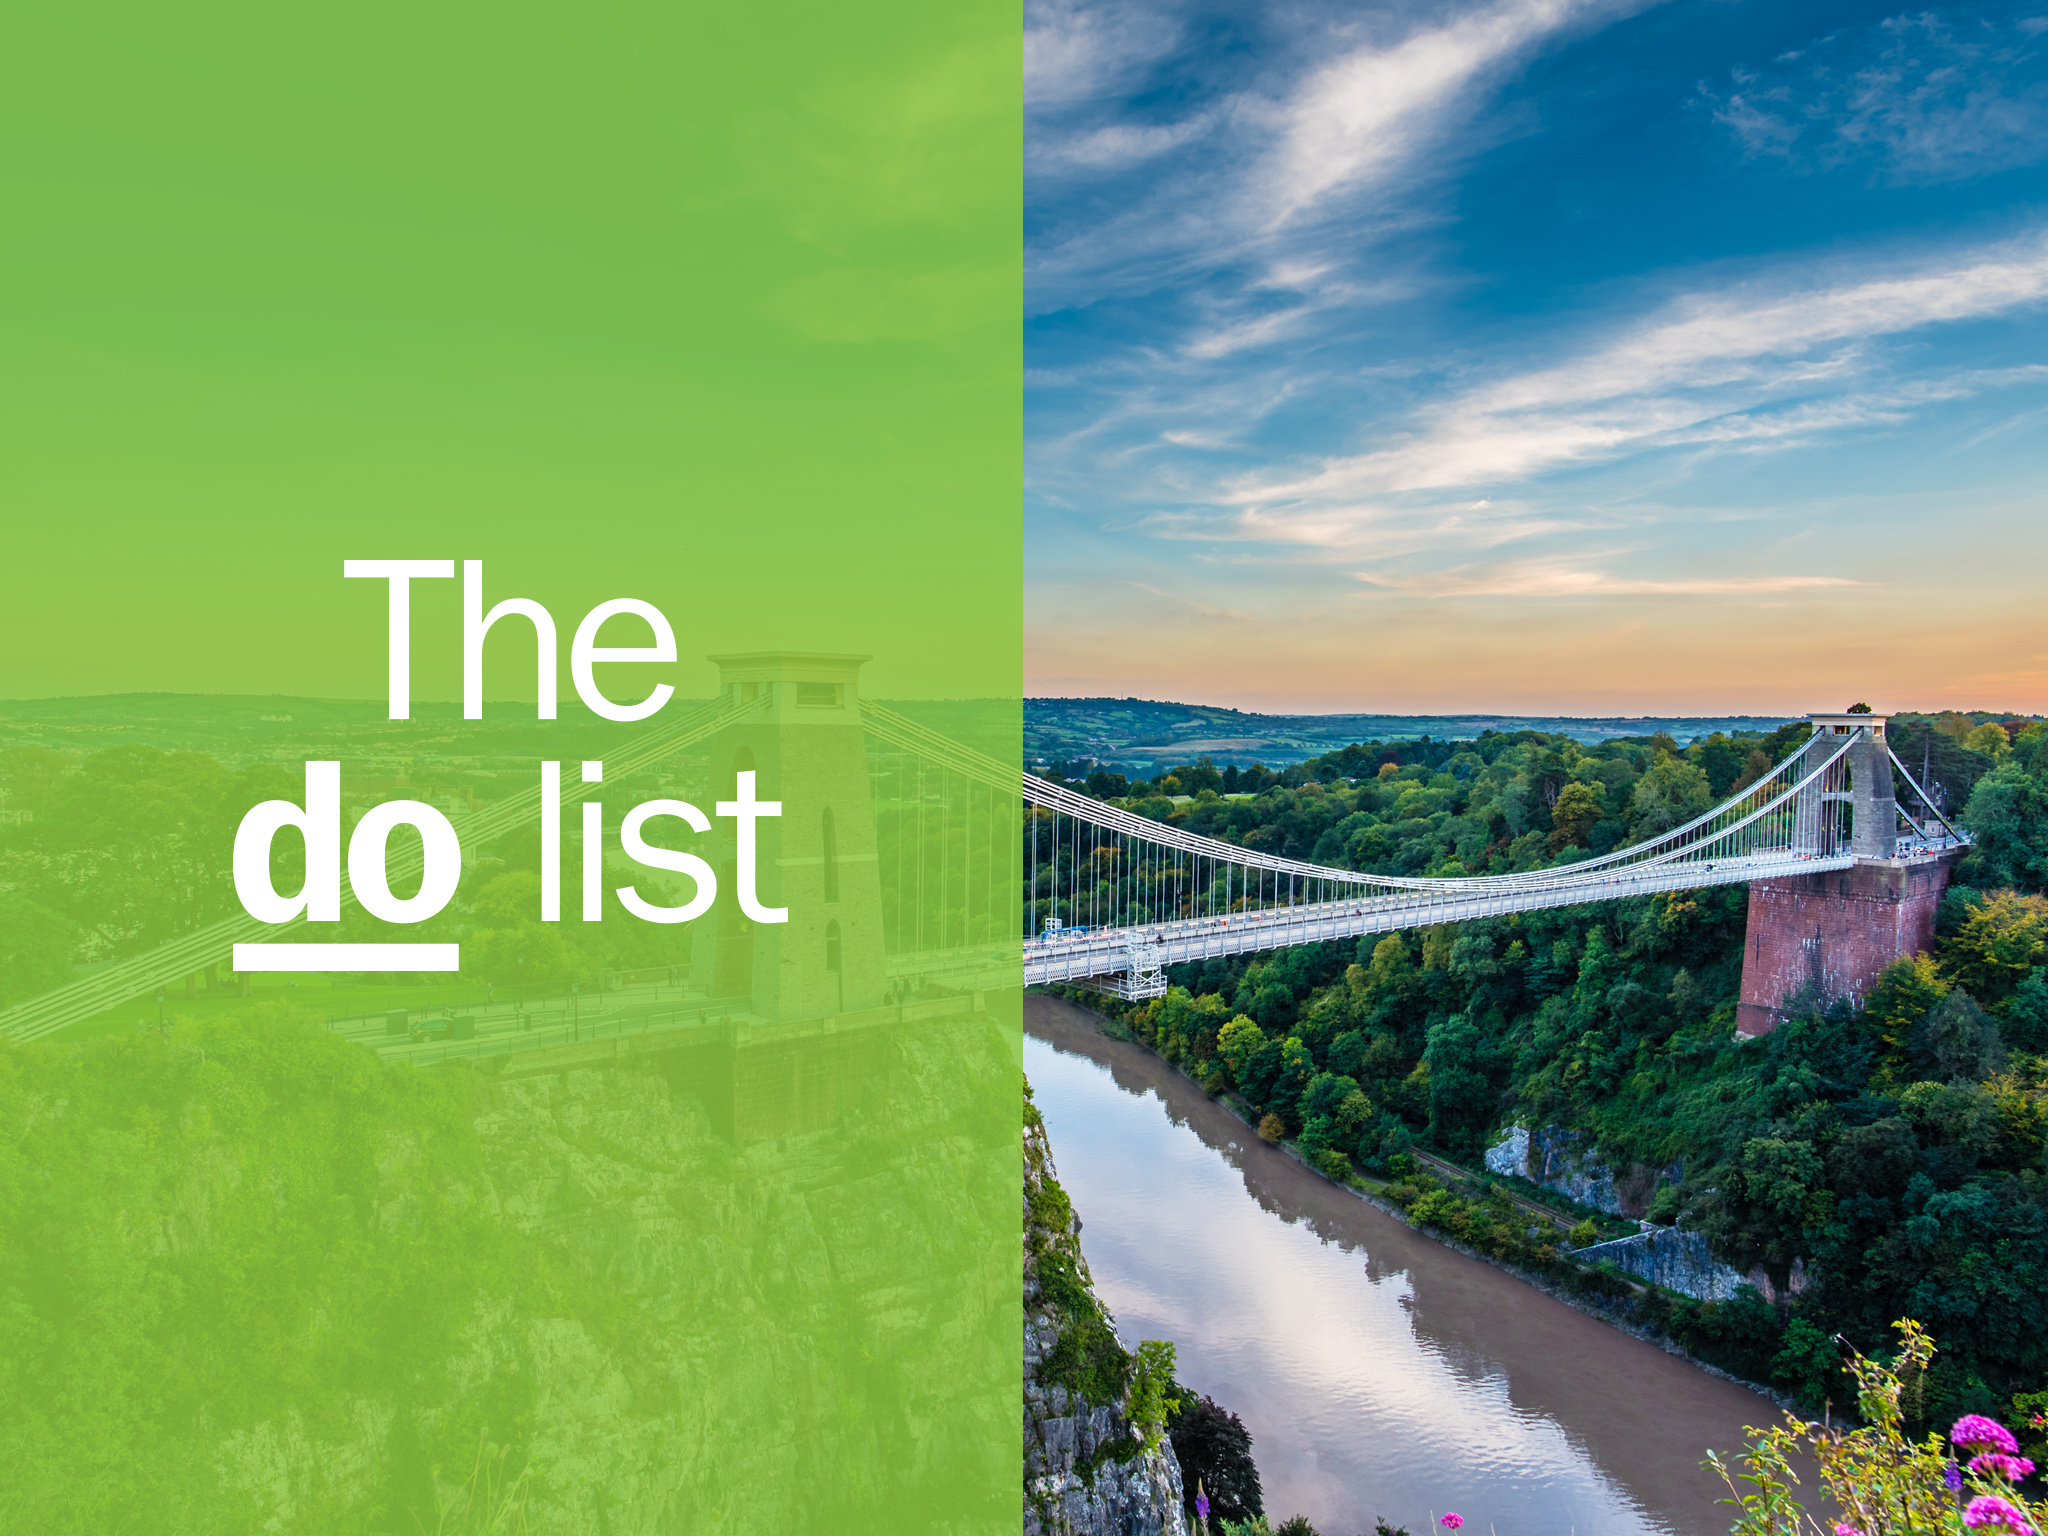 Bristol DO list